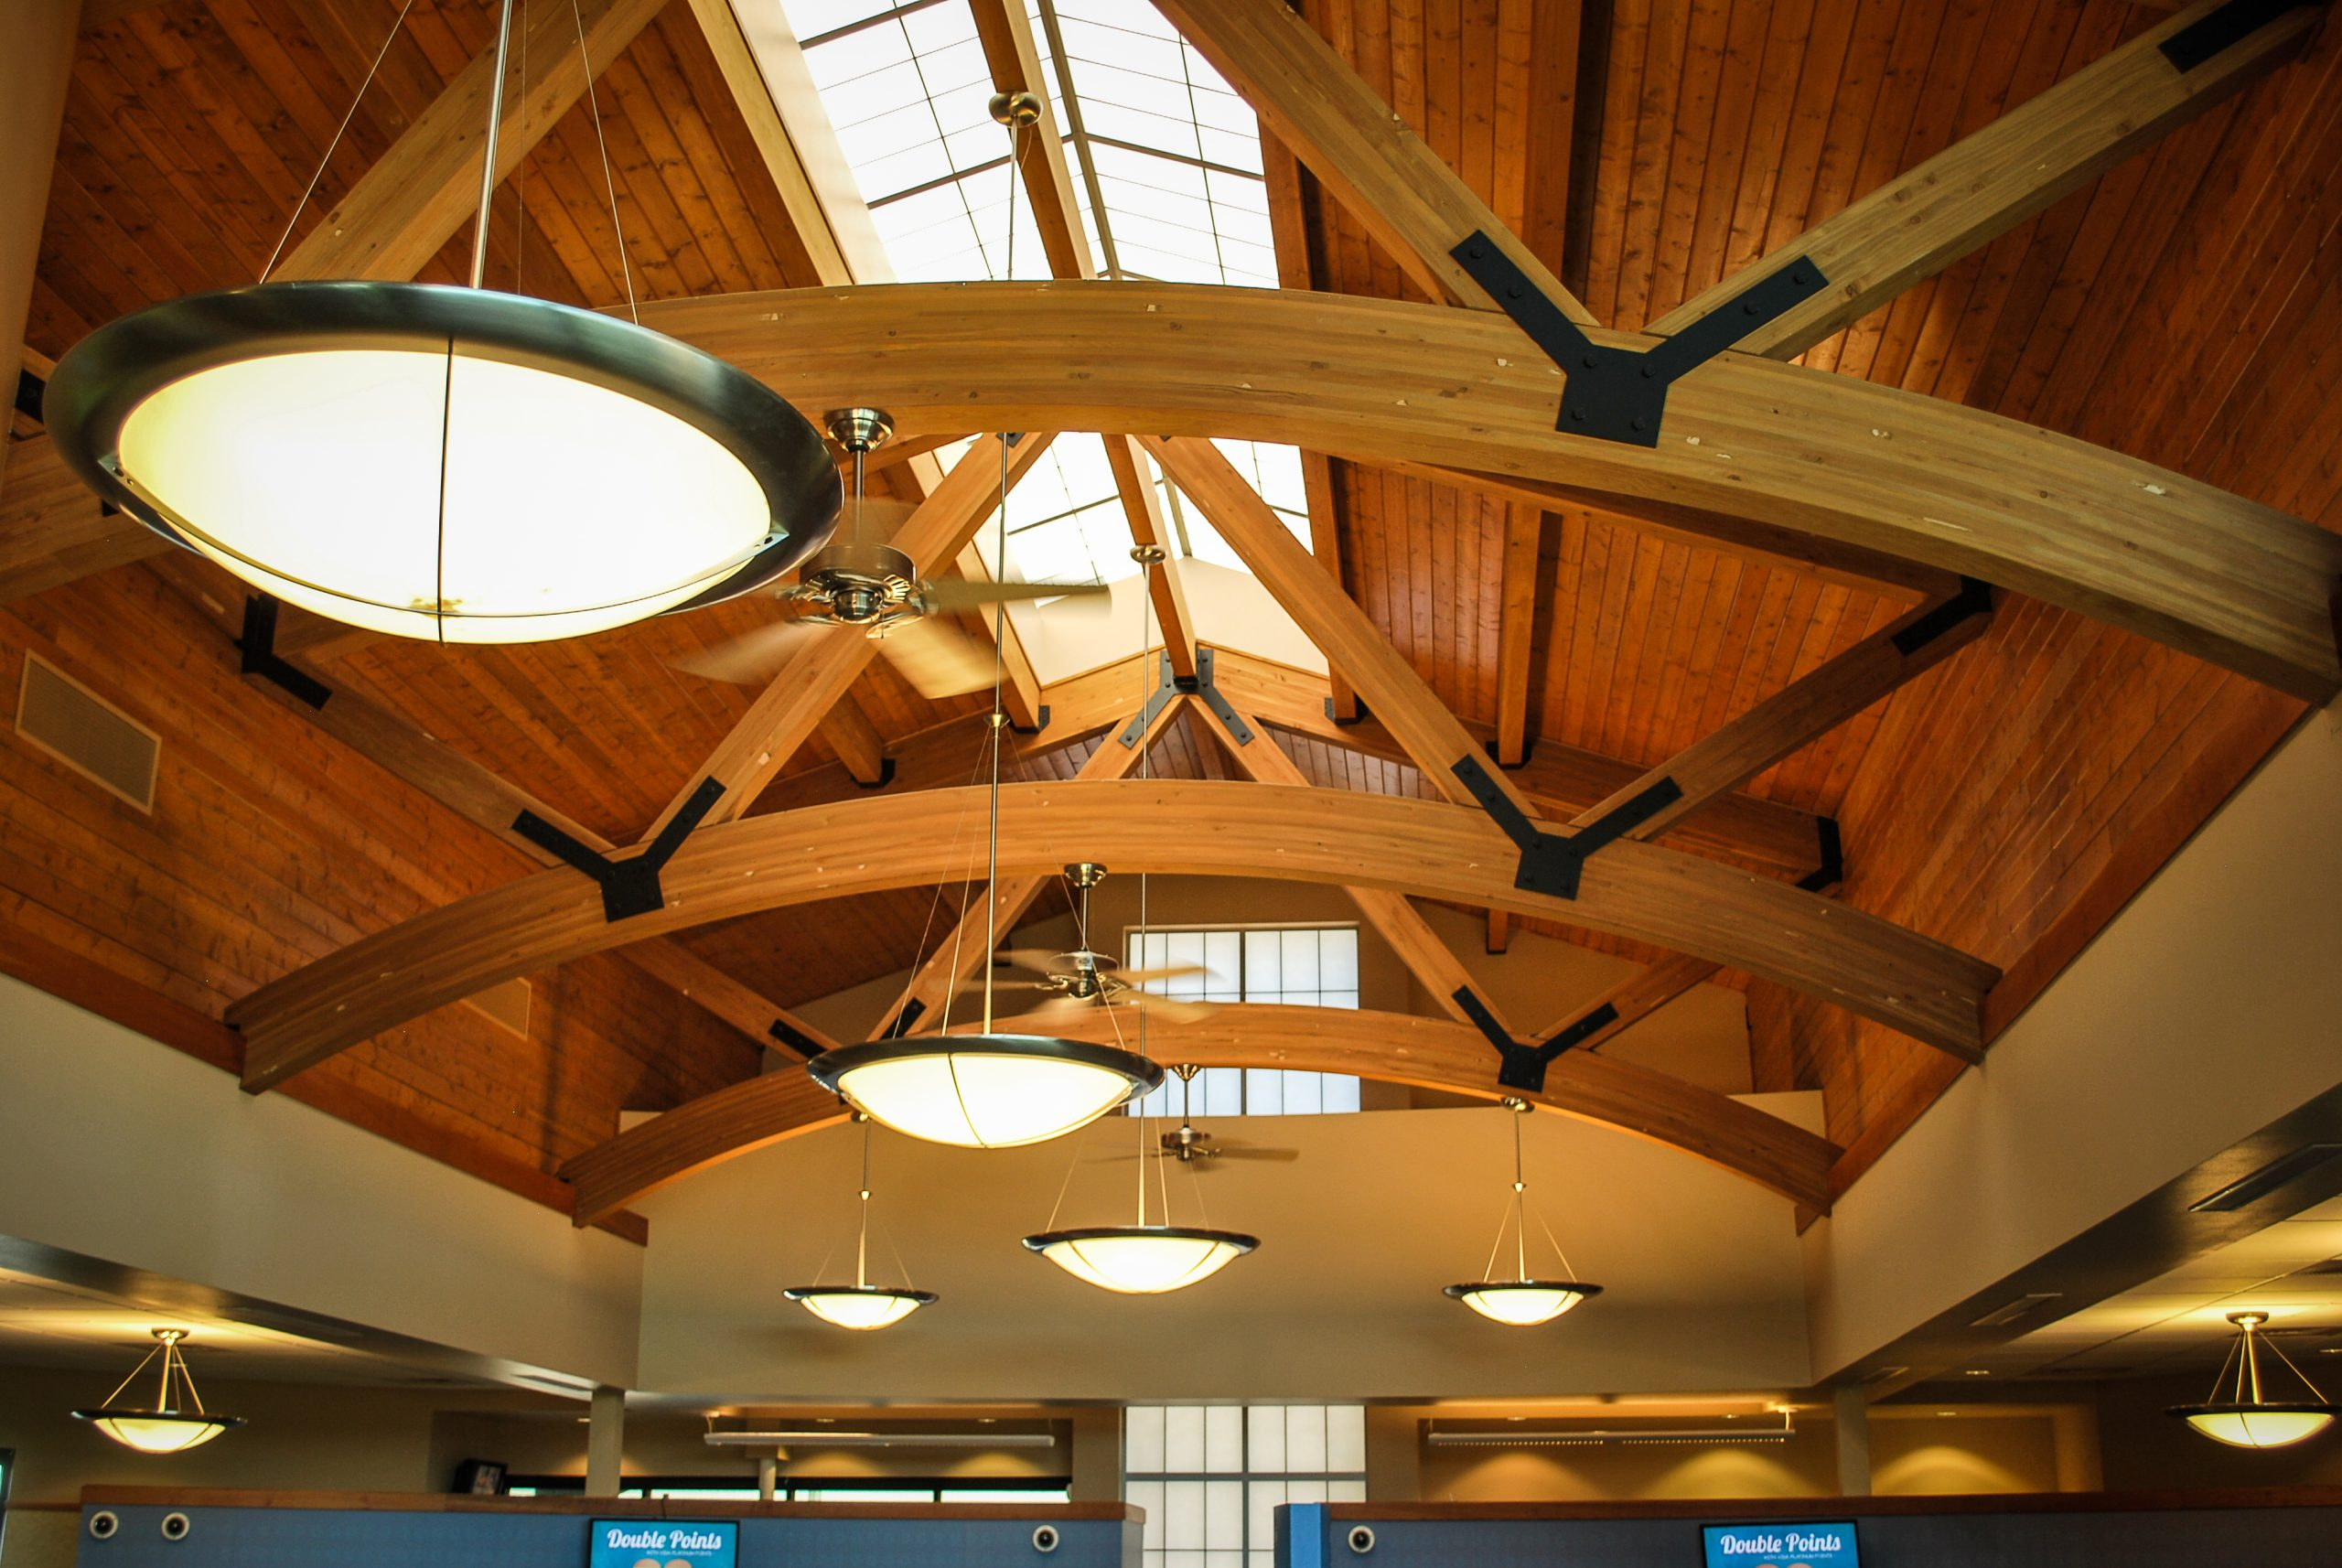 A new building for the Moses Lake, Washington branch of Horizon Credit Union the features an iconic tower element, exposed timber roof structure, and skylights.